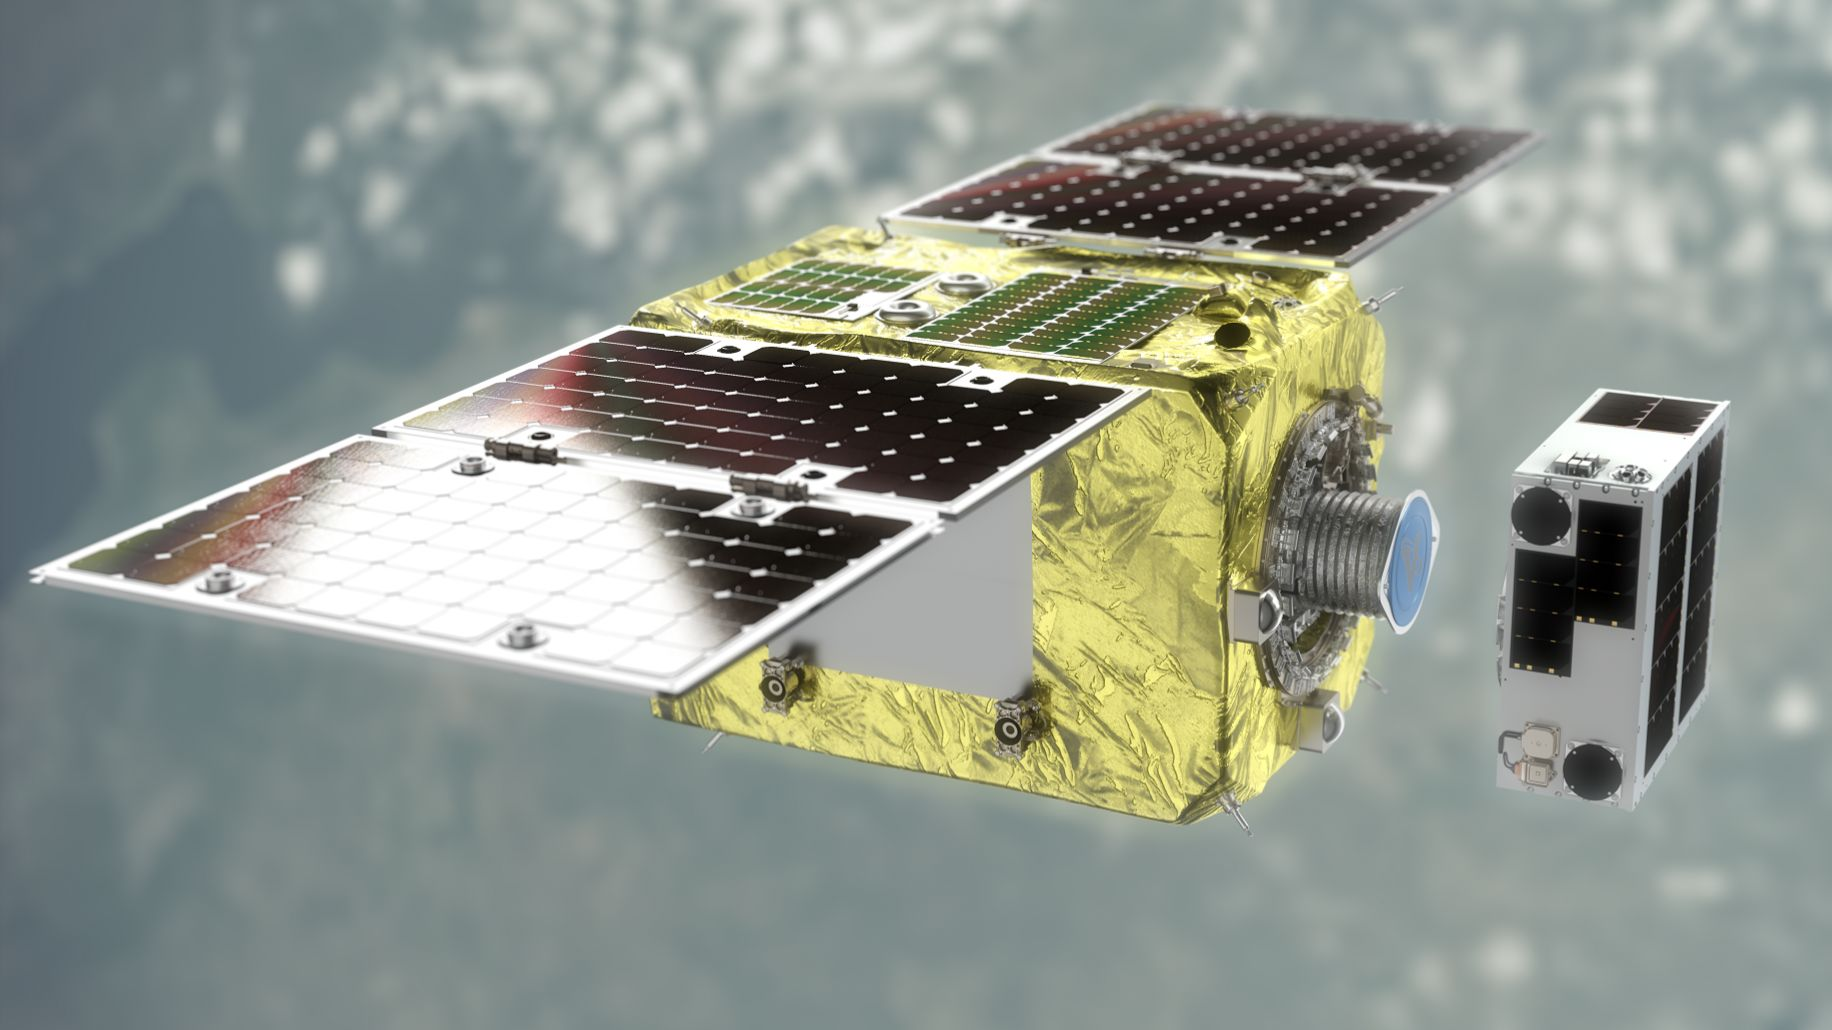 Astroscale space debris removal demo set for launch - BBC News